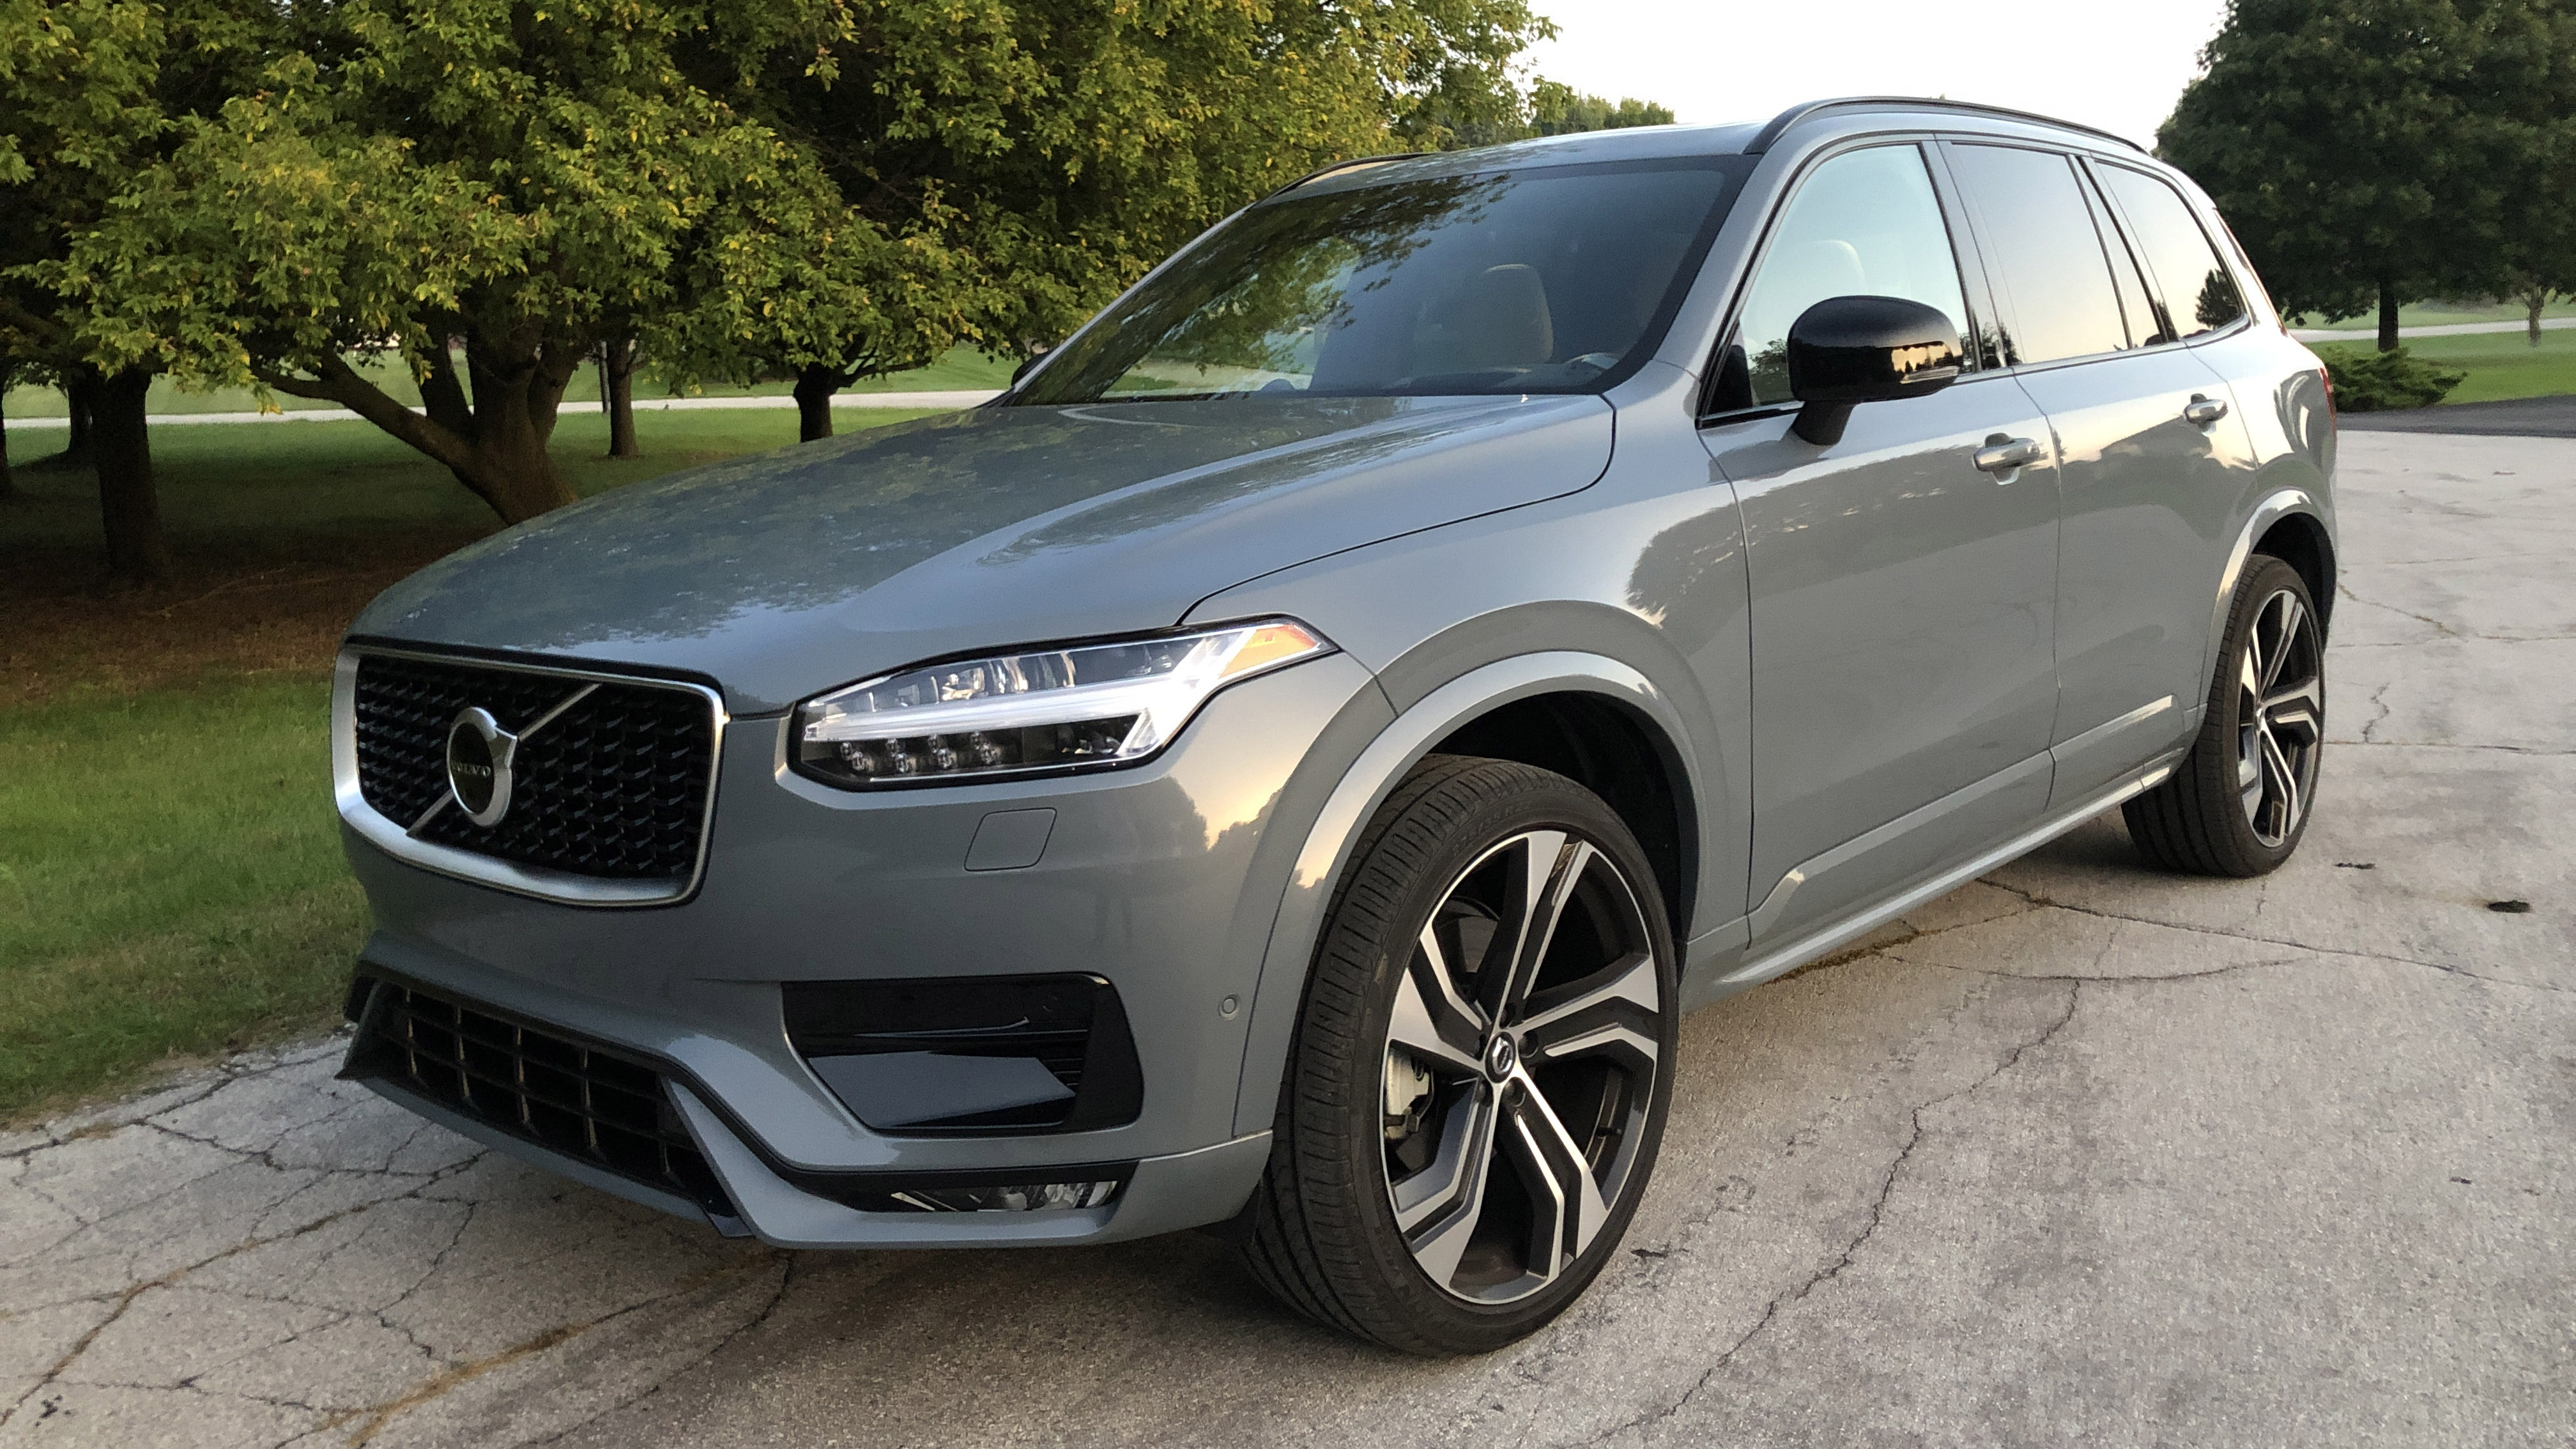 2020 Volvo Xc90 T6 R Design Review Driving Impressions Interior Space Autoblog